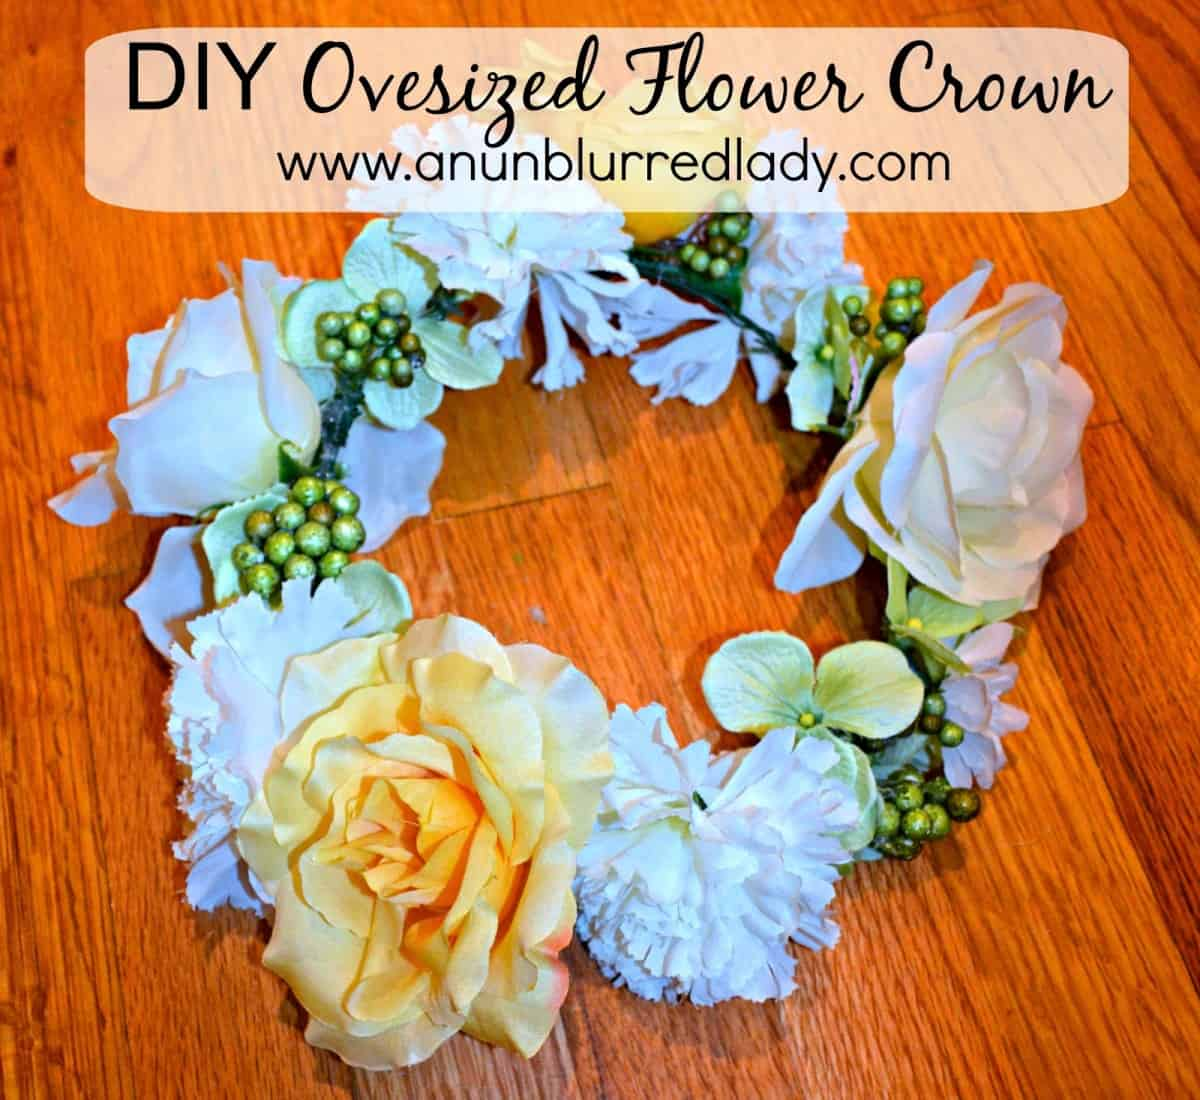 Diy oversized flower crown an unblurred lady i decided to follow suit and make my own oversized flower crown for this festival i was pleasantly surprised with how easy the diy project was and elated izmirmasajfo